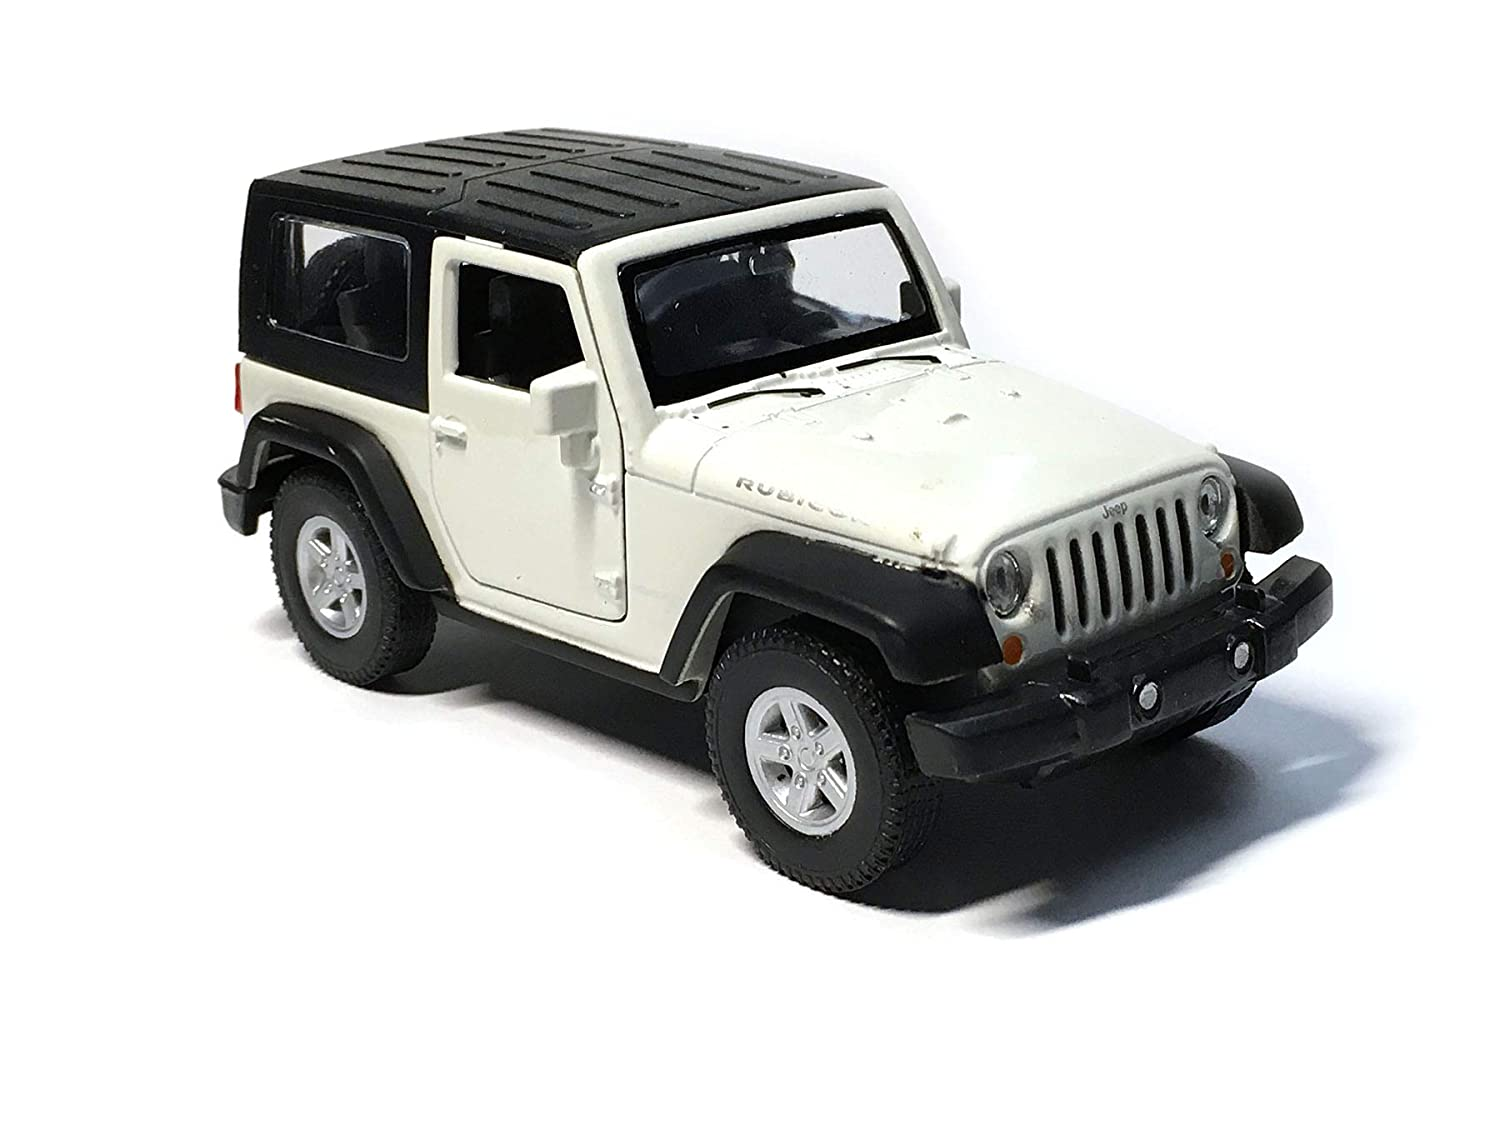 Jeep New Model >> Hck Jeep Wrangler Rubicon 4 25 Inch New Exploration Diecast Model Toy Car White